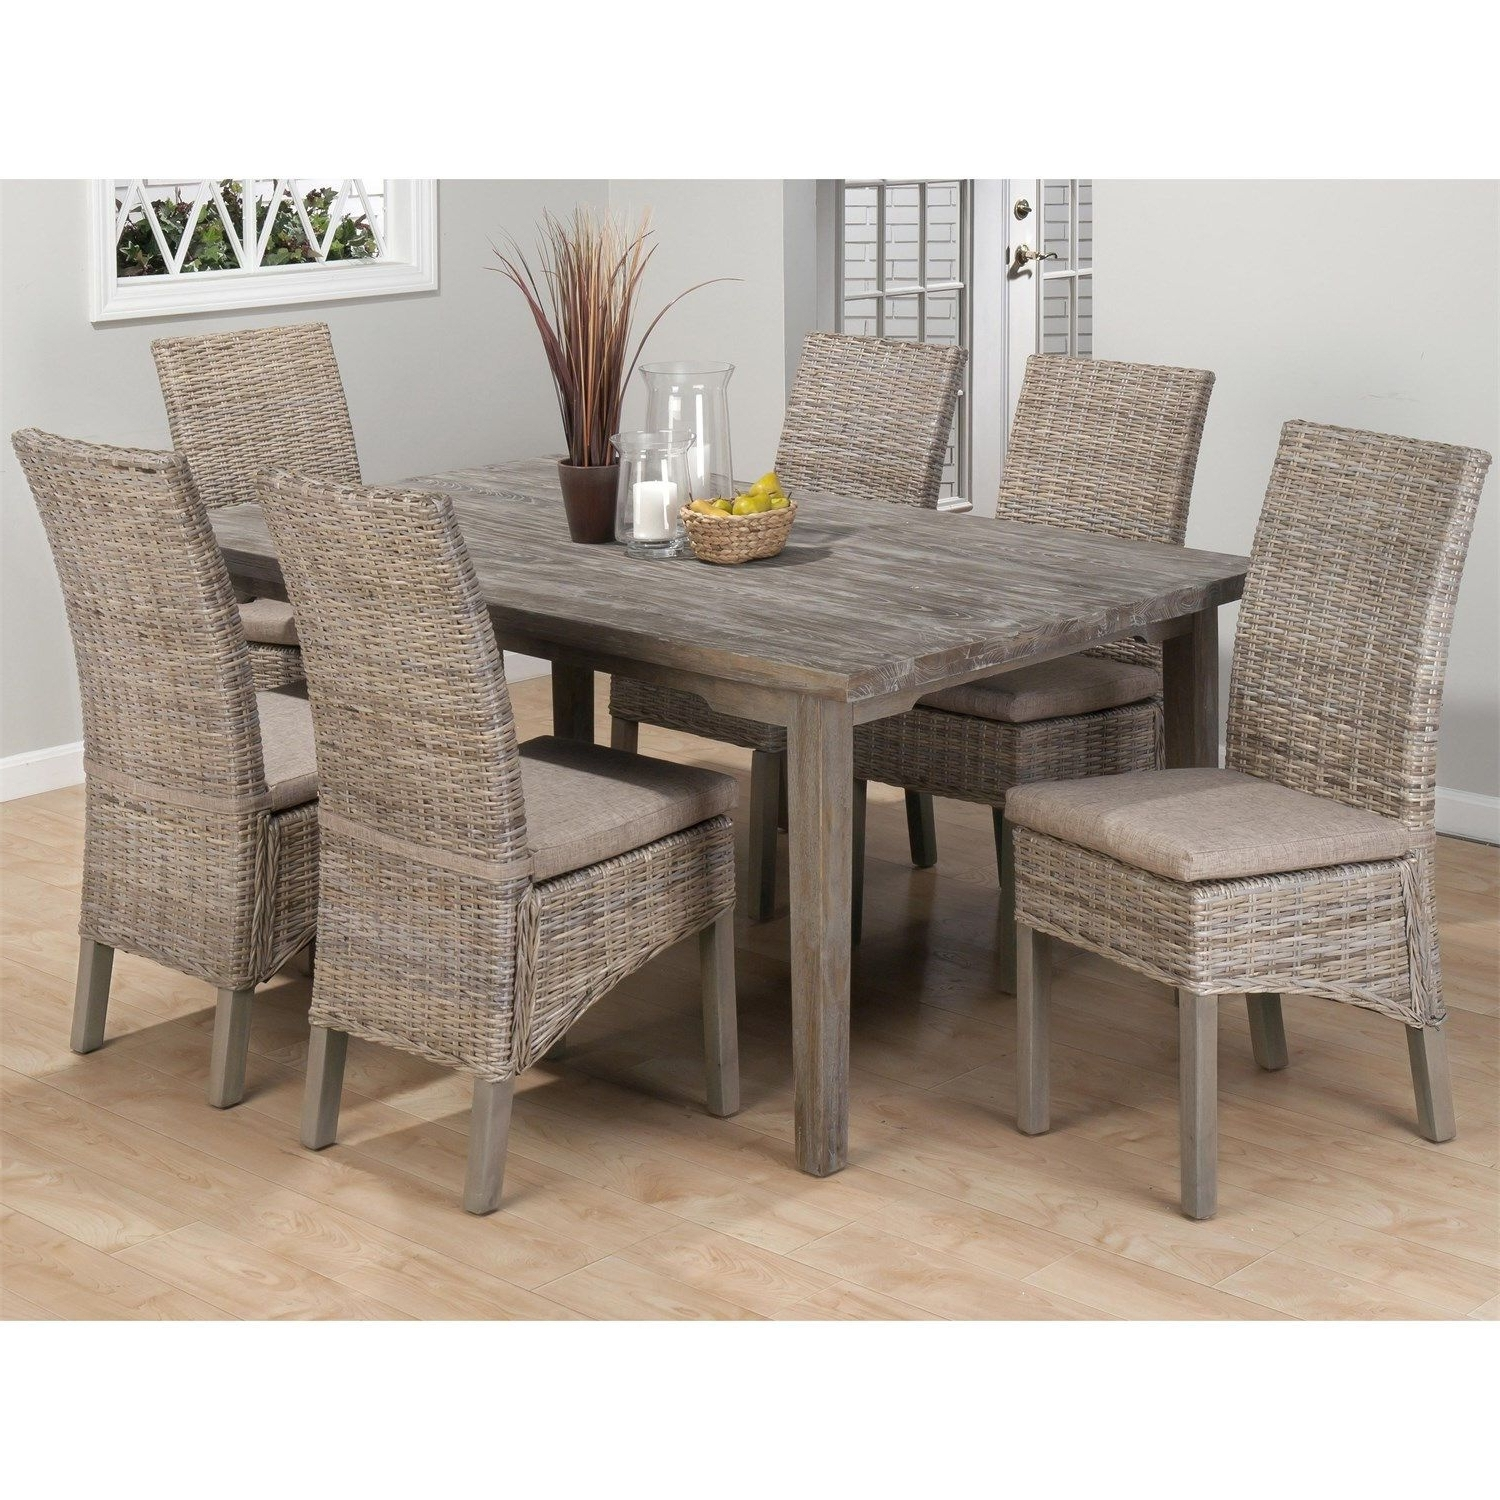 Best And Newest Dining Room Rattan Sofa Set With Table Dining Room Set With Wicker Within Rattan Dining Tables And Chairs (View 5 of 25)